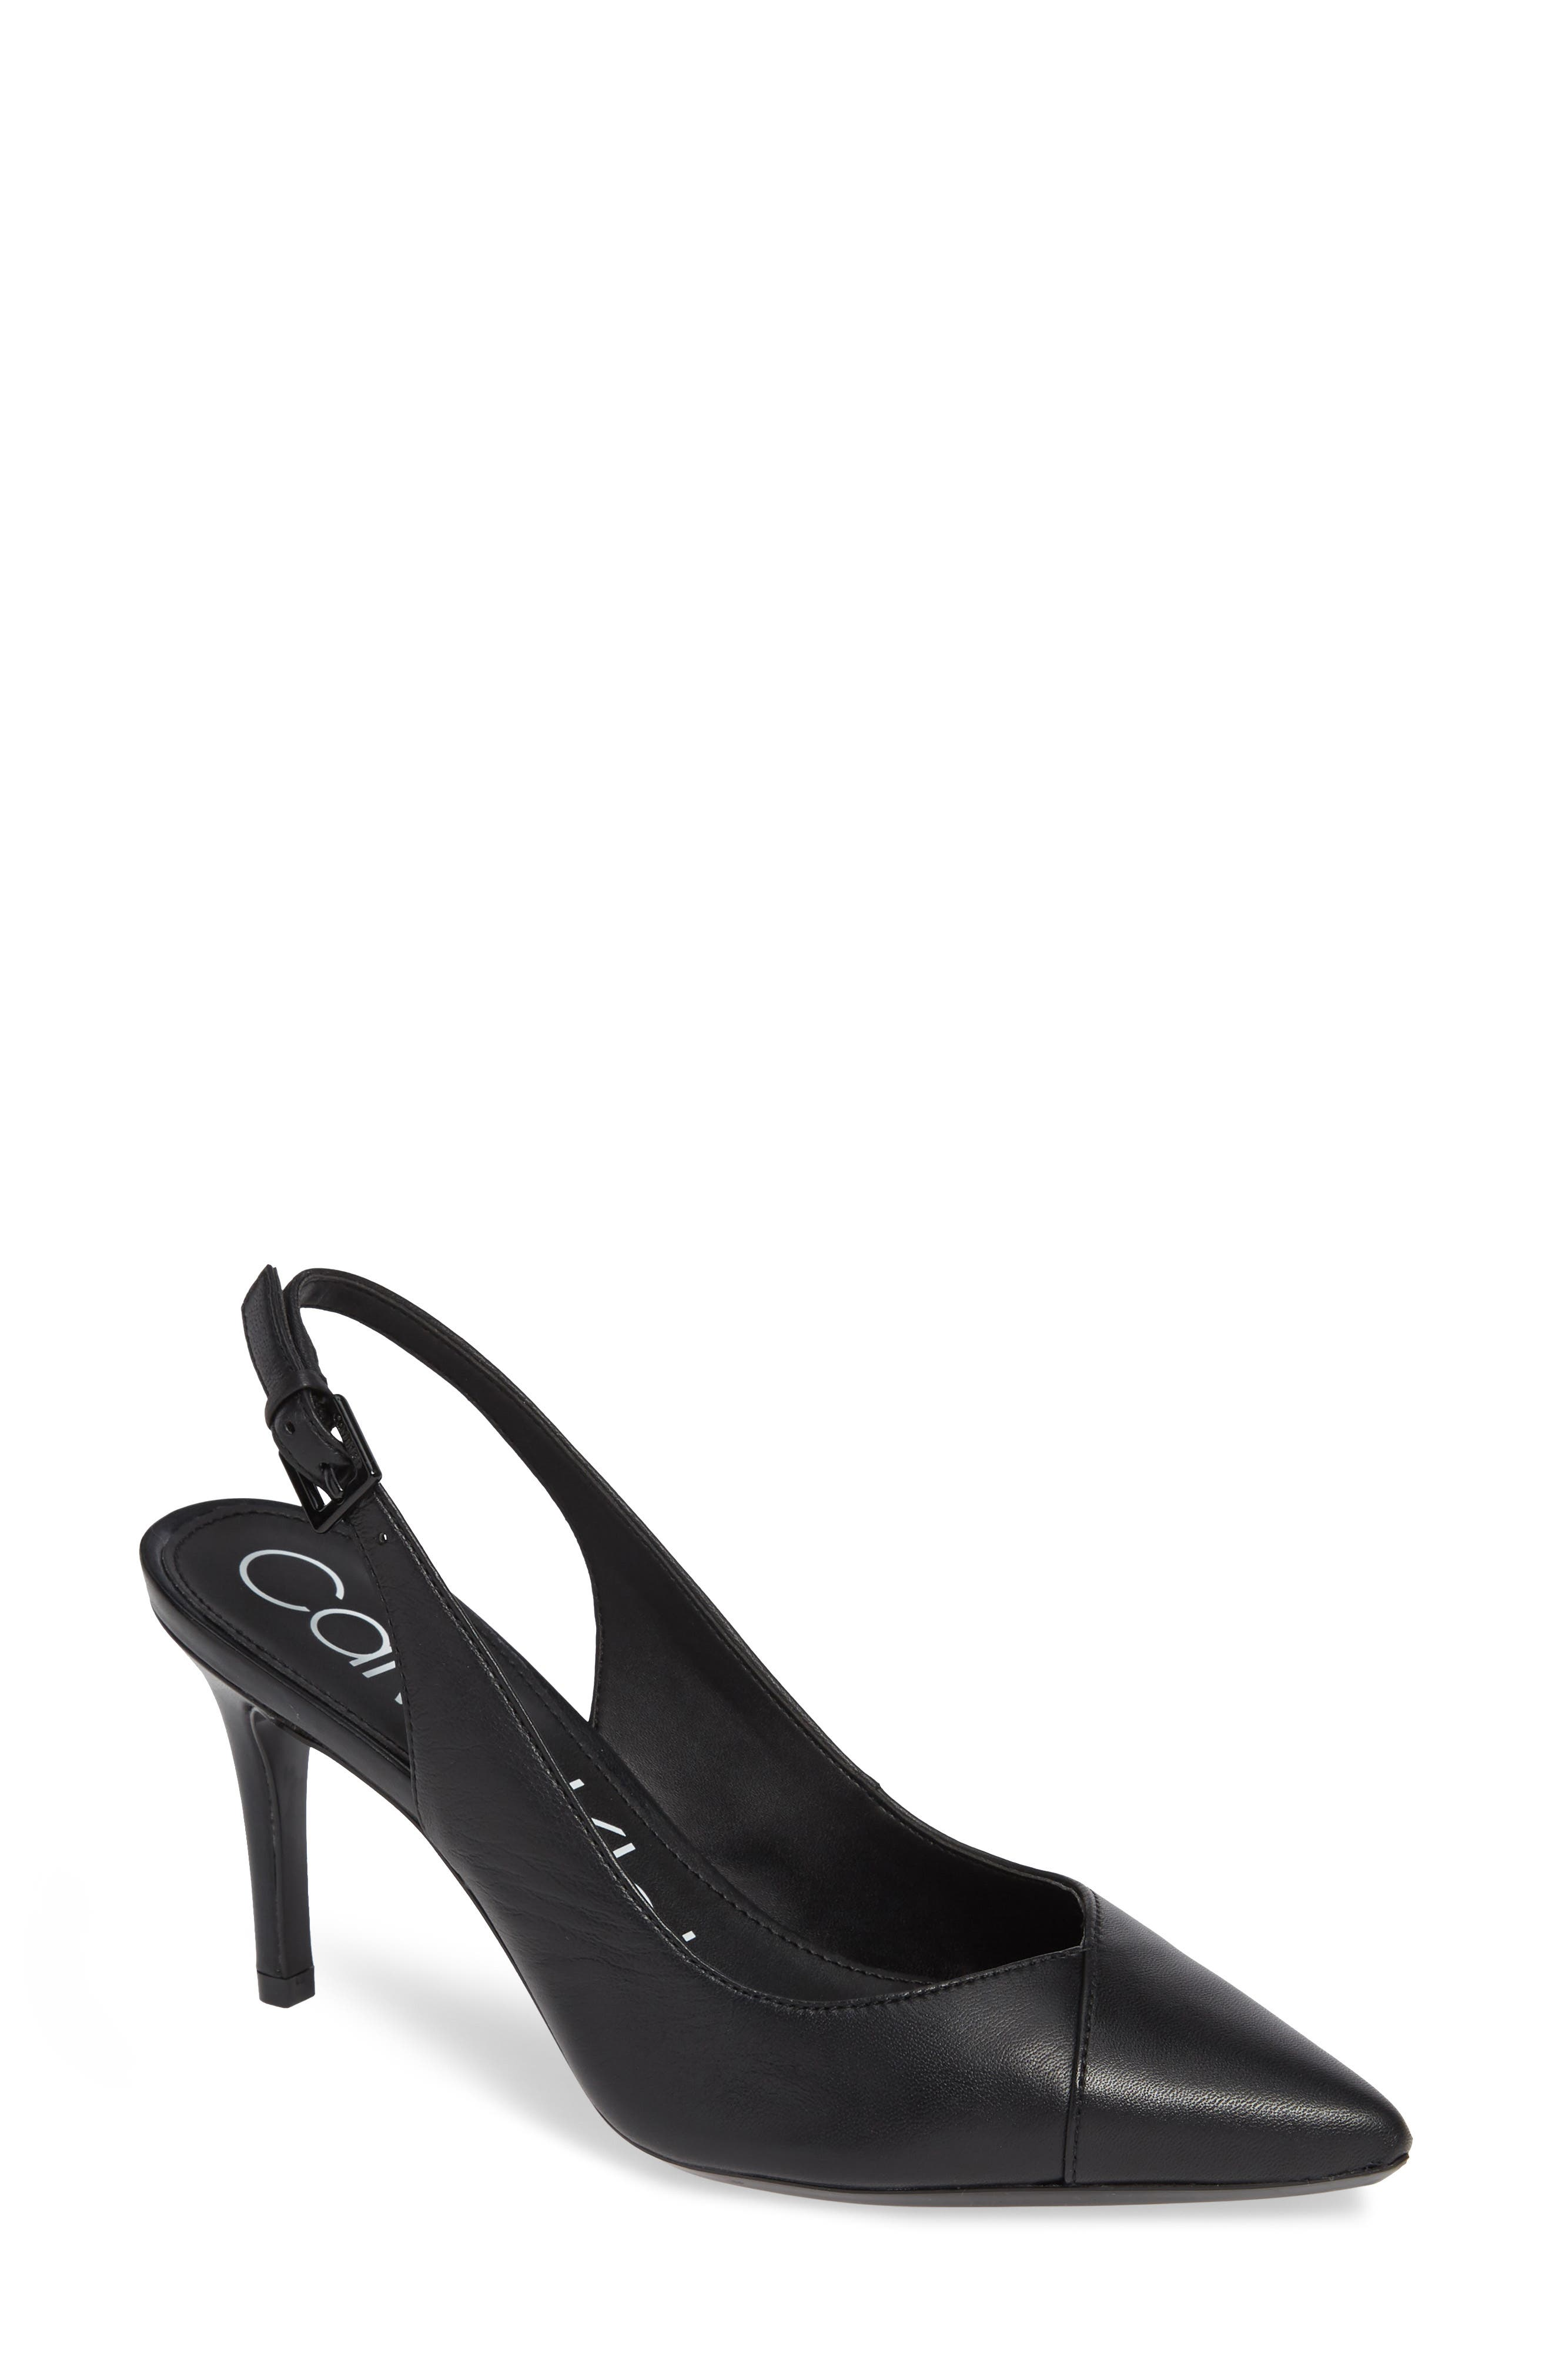 Gwenith Slingback Pump,                             Main thumbnail 1, color,                             BLACK LEATHER